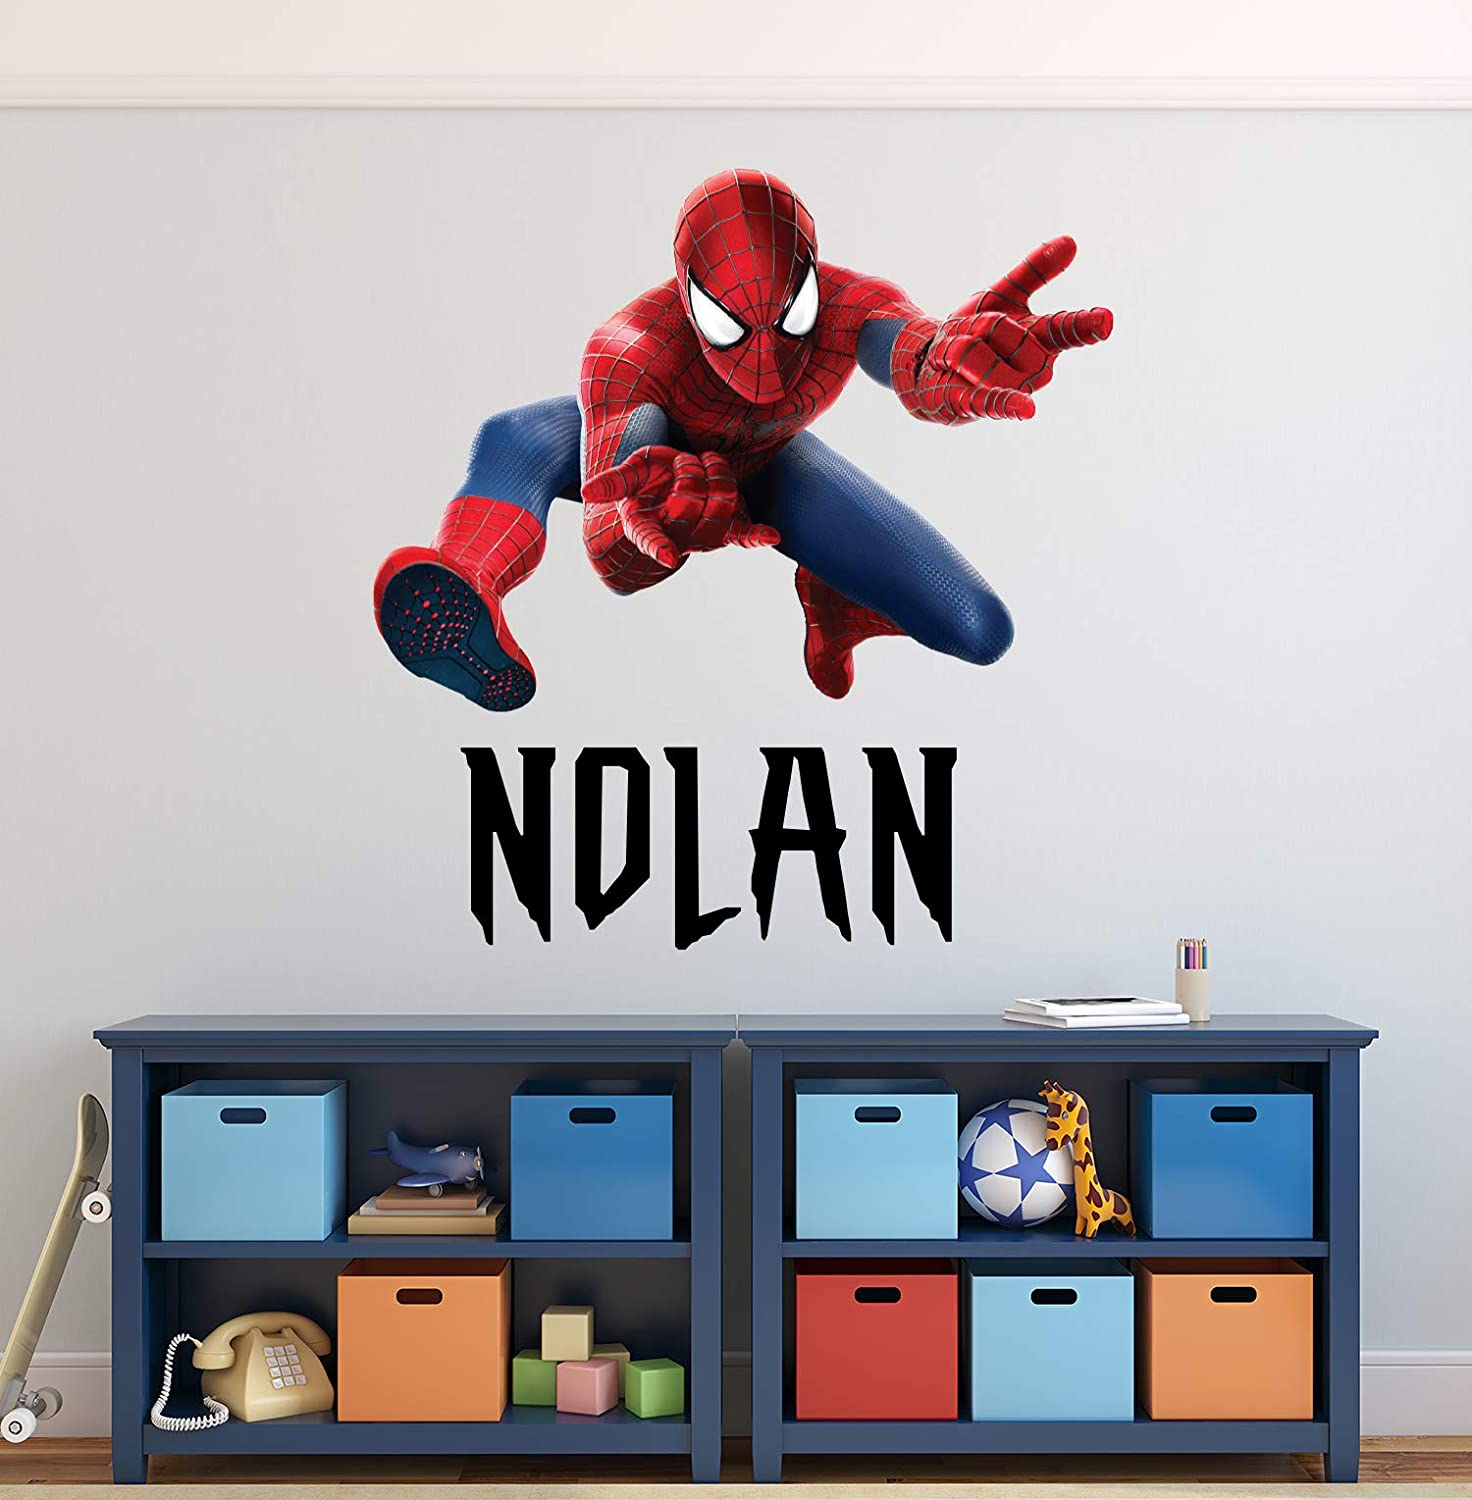 "Custom Name Wall Decal Spider Man Wall Decals Art Decor Superhero Boys Kids Room Wall Decor Custom Gift Mural Poster Vinyl Wall Stickers (16""W x 16""H)"